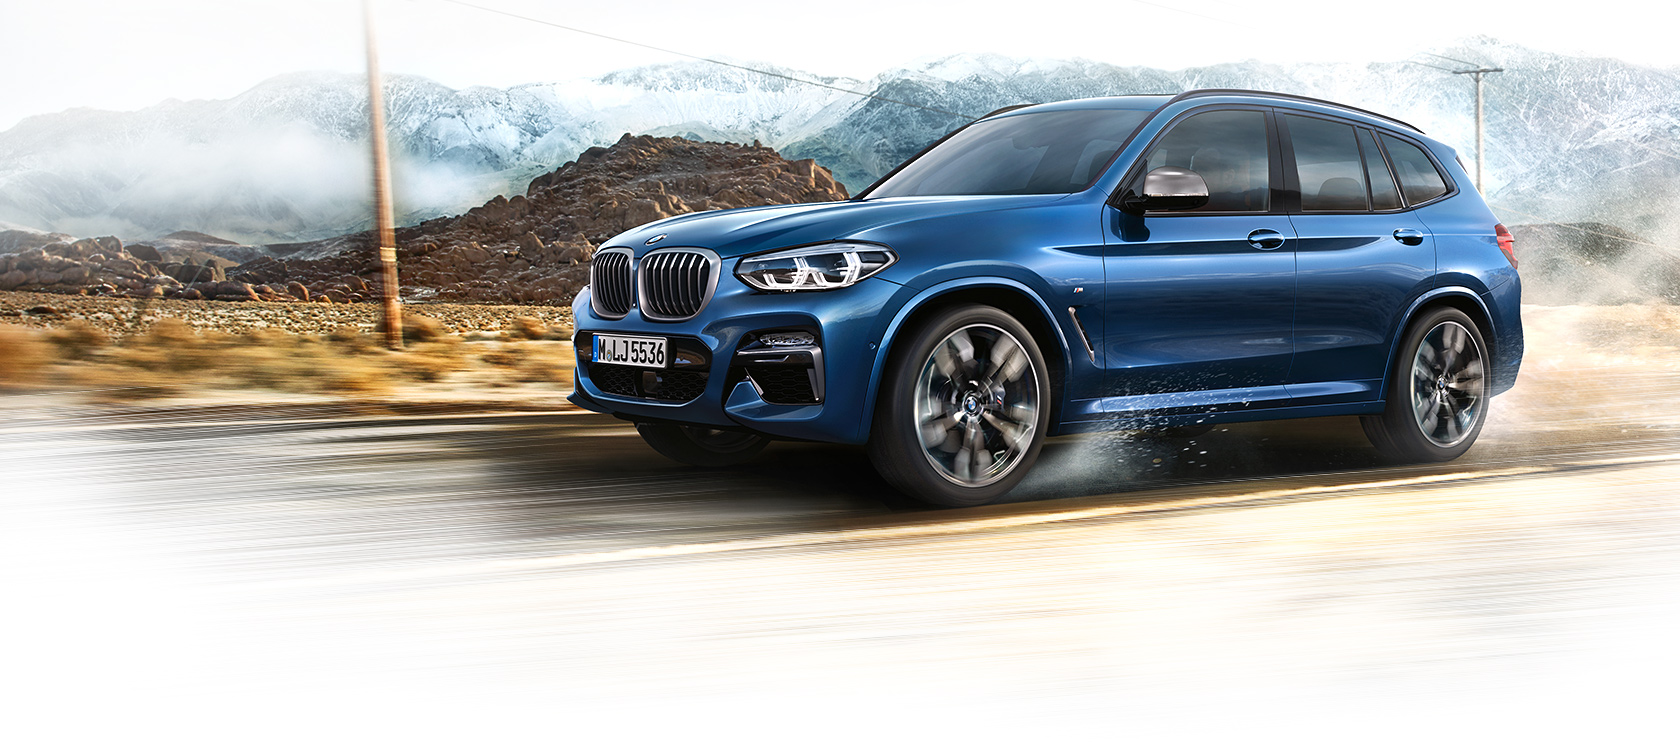 BMW X3 in metallic blue: three-quarter view of the car on the mountain road.